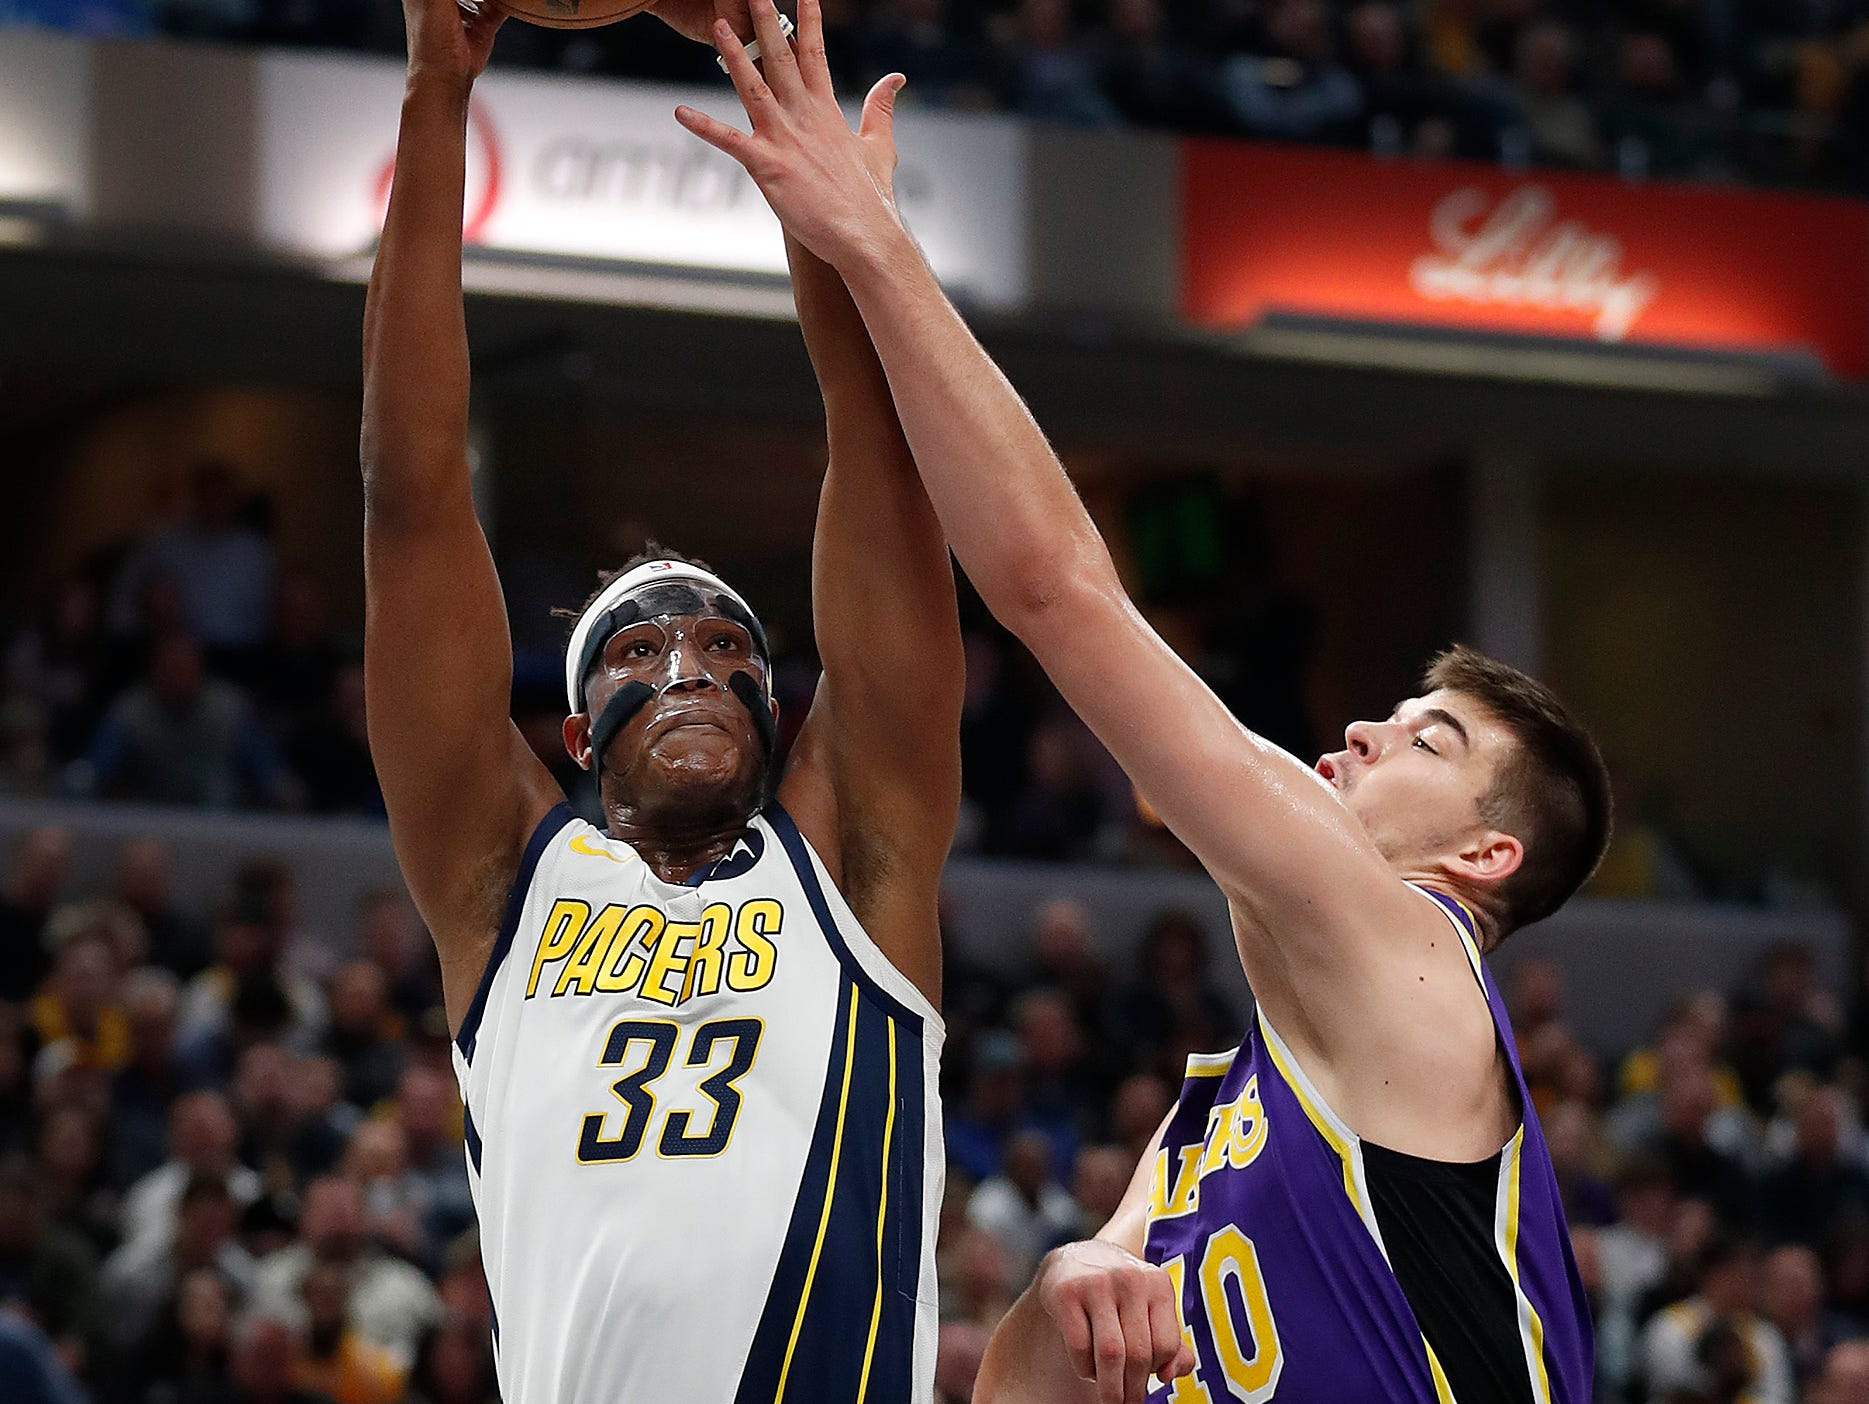 Indiana Pacers center Myles Turner (33) shoots over Los Angeles Lakers center Ivica Zubac (40) in the first half of their game at Bankers Life Fieldhouse on Tuesday, Feb. 5, 2019.